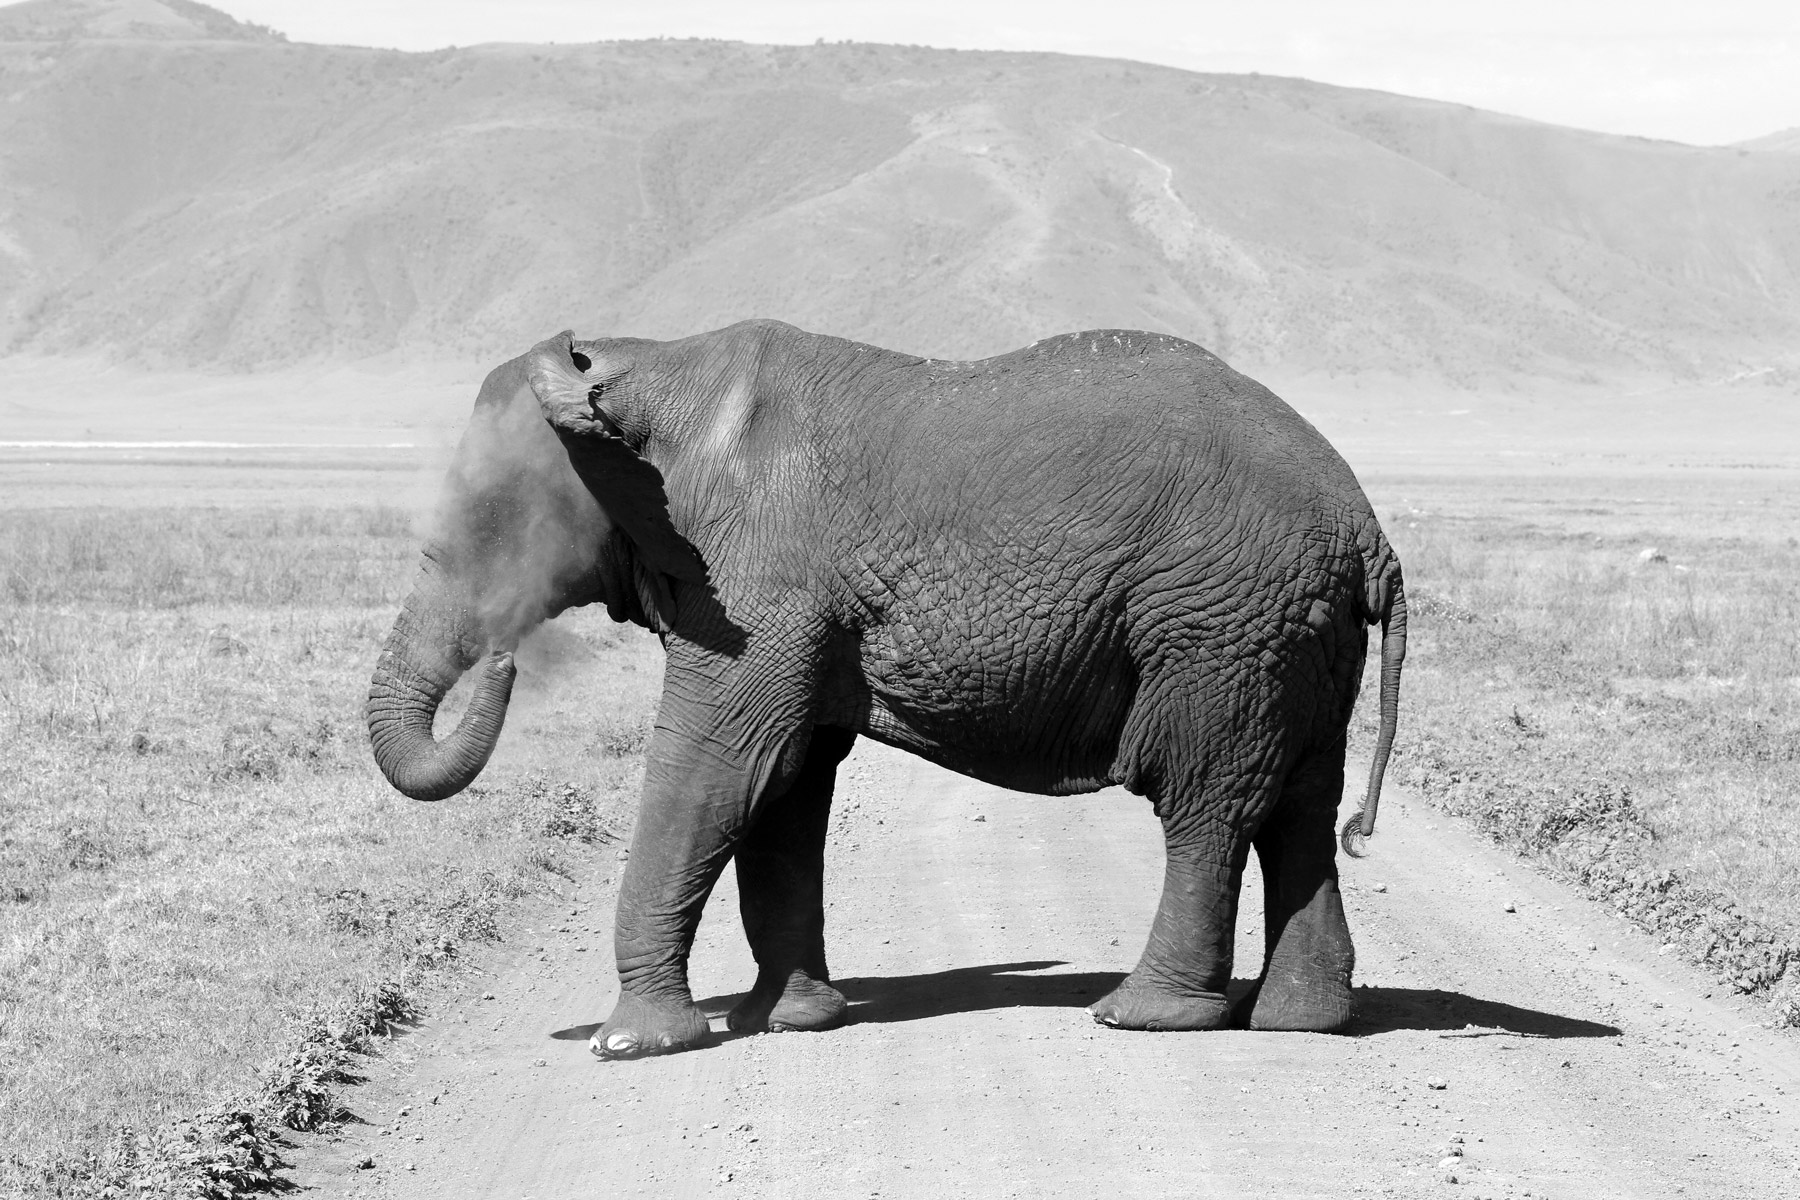 An elephant blowing dirt in its face in the Ngorongoro Crater, Tanzania